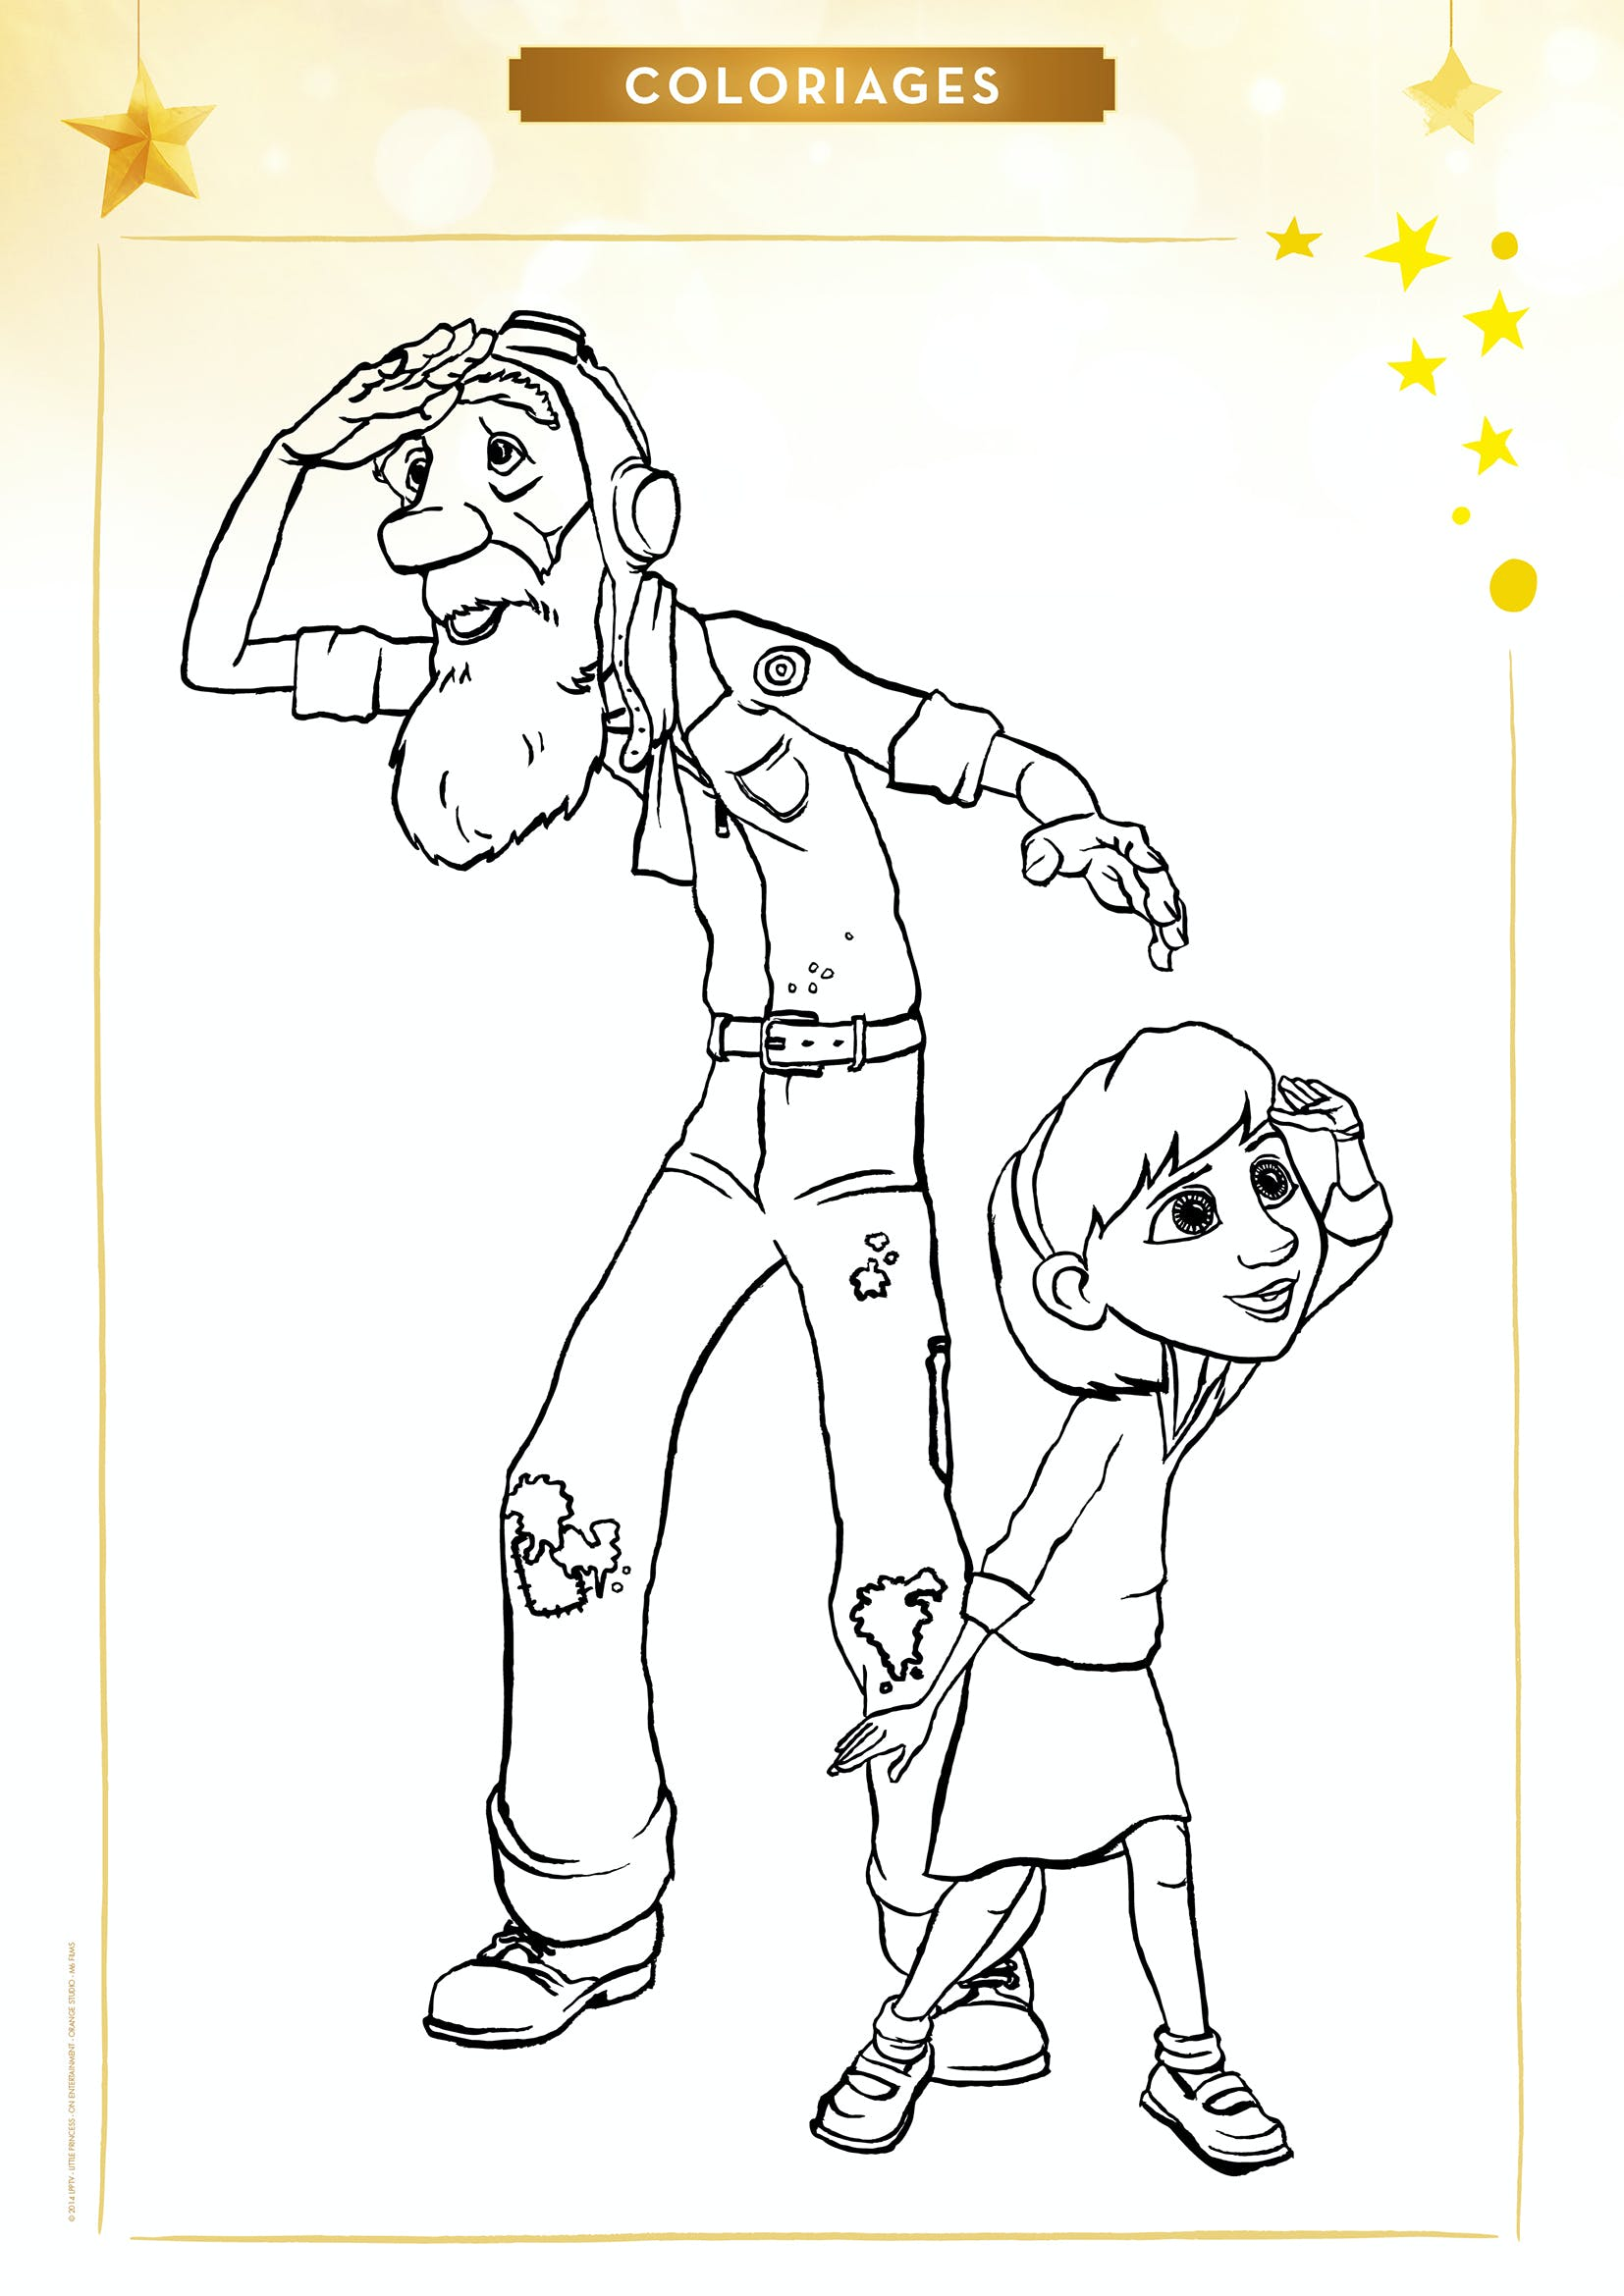 Coloriage Petit Dessin Anime.Coloriages Le Petit Prince Coloriages De Heros Et Dessins Animes